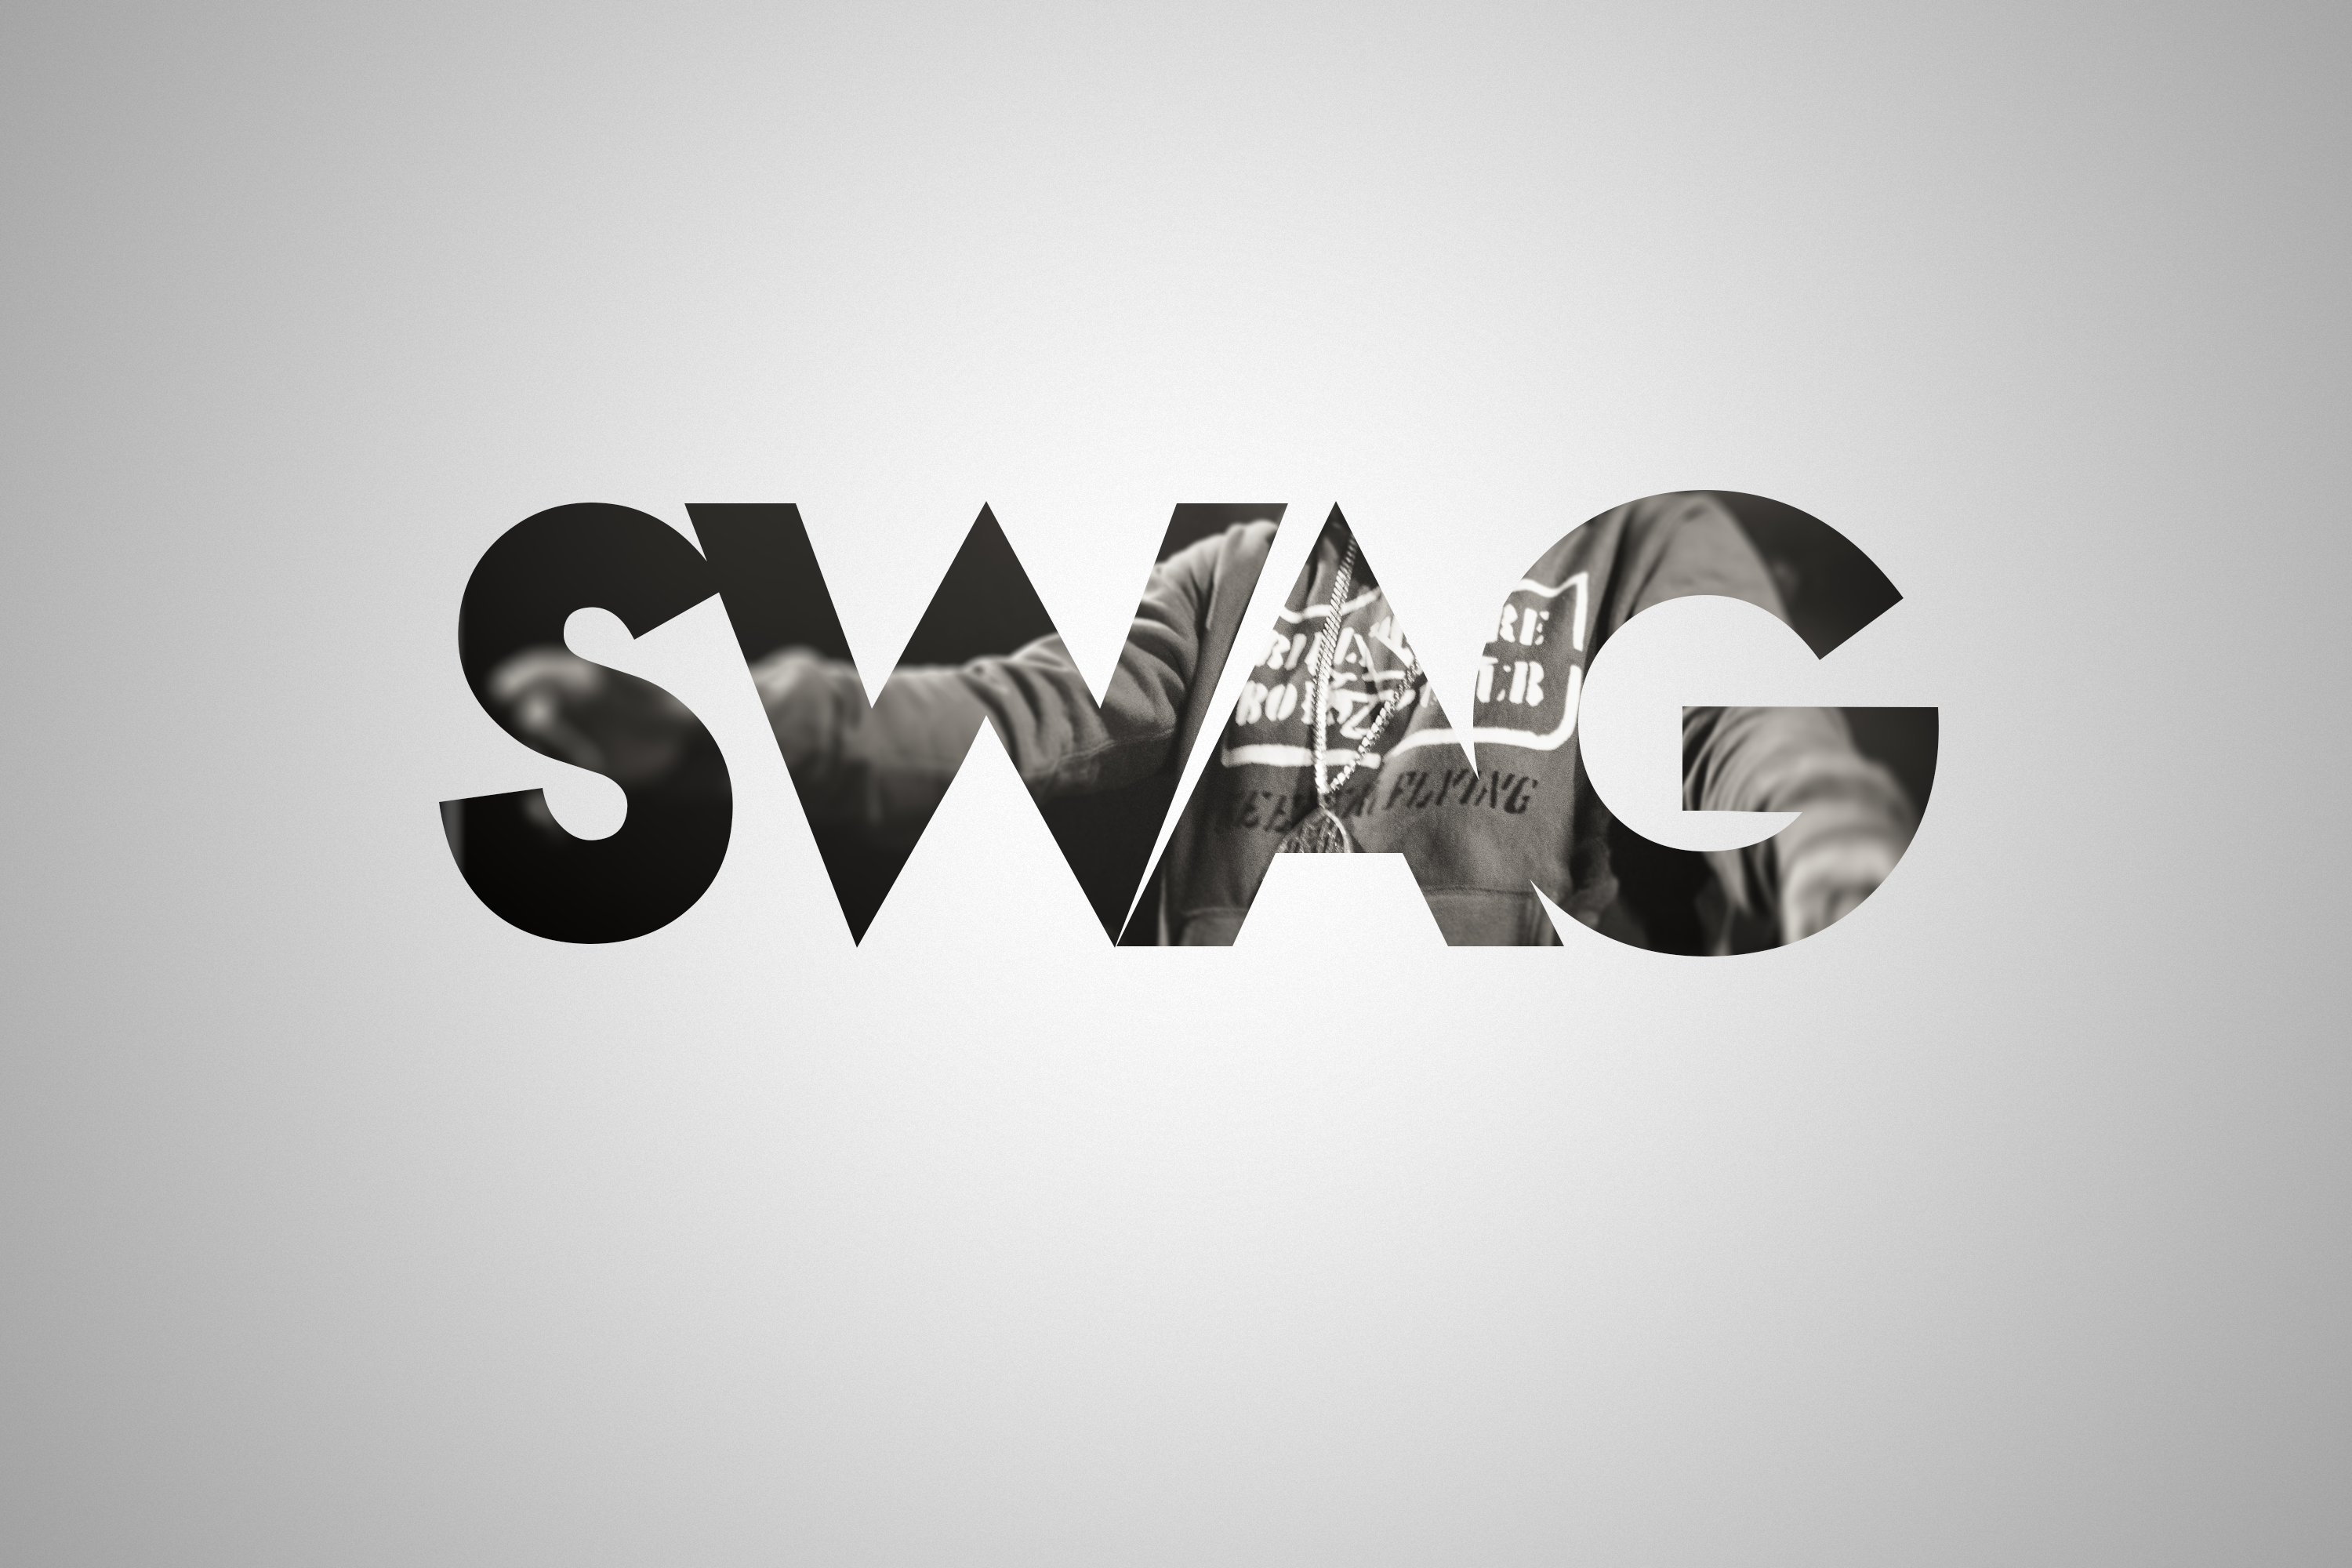 Swag Backgrounds on Wallpapers Vista